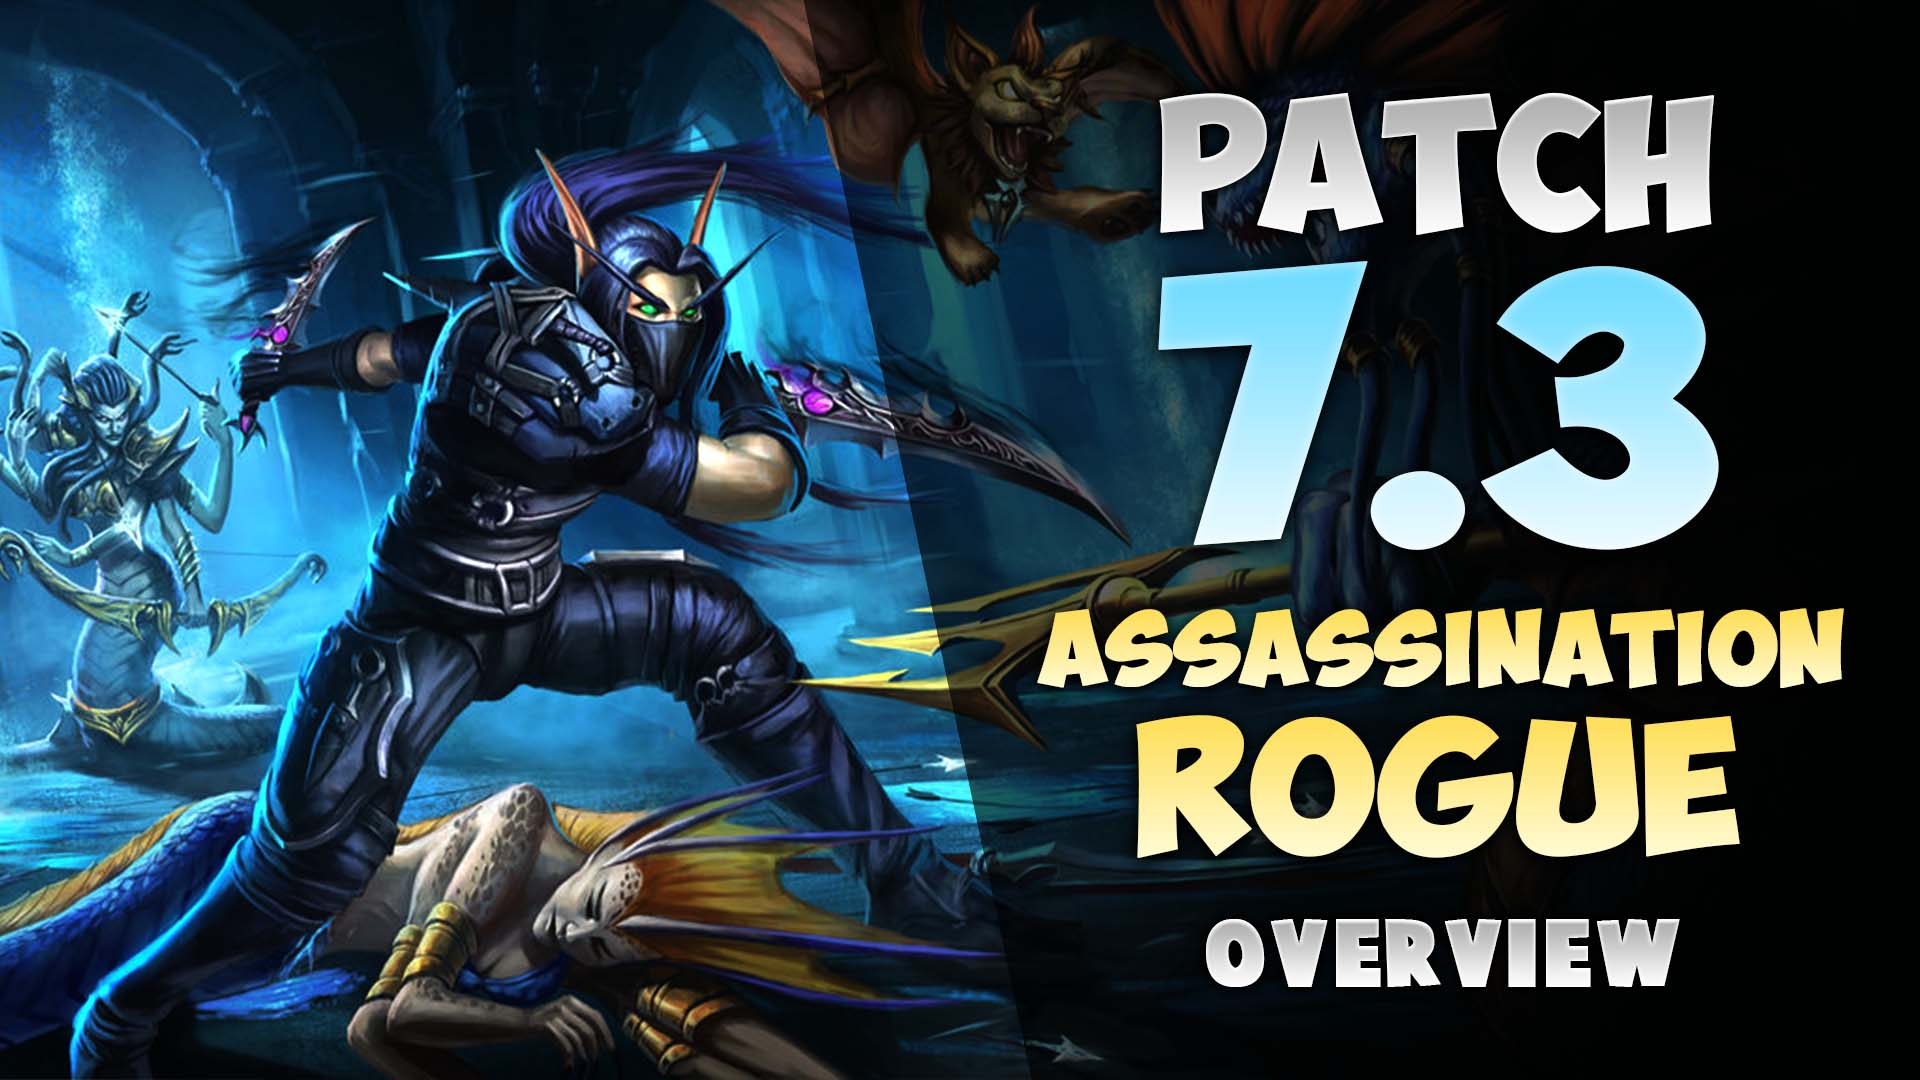 Rogue hunting log rank 1 - Patch 7 3 Assassination Rogue Overview Wow Pvp Guide